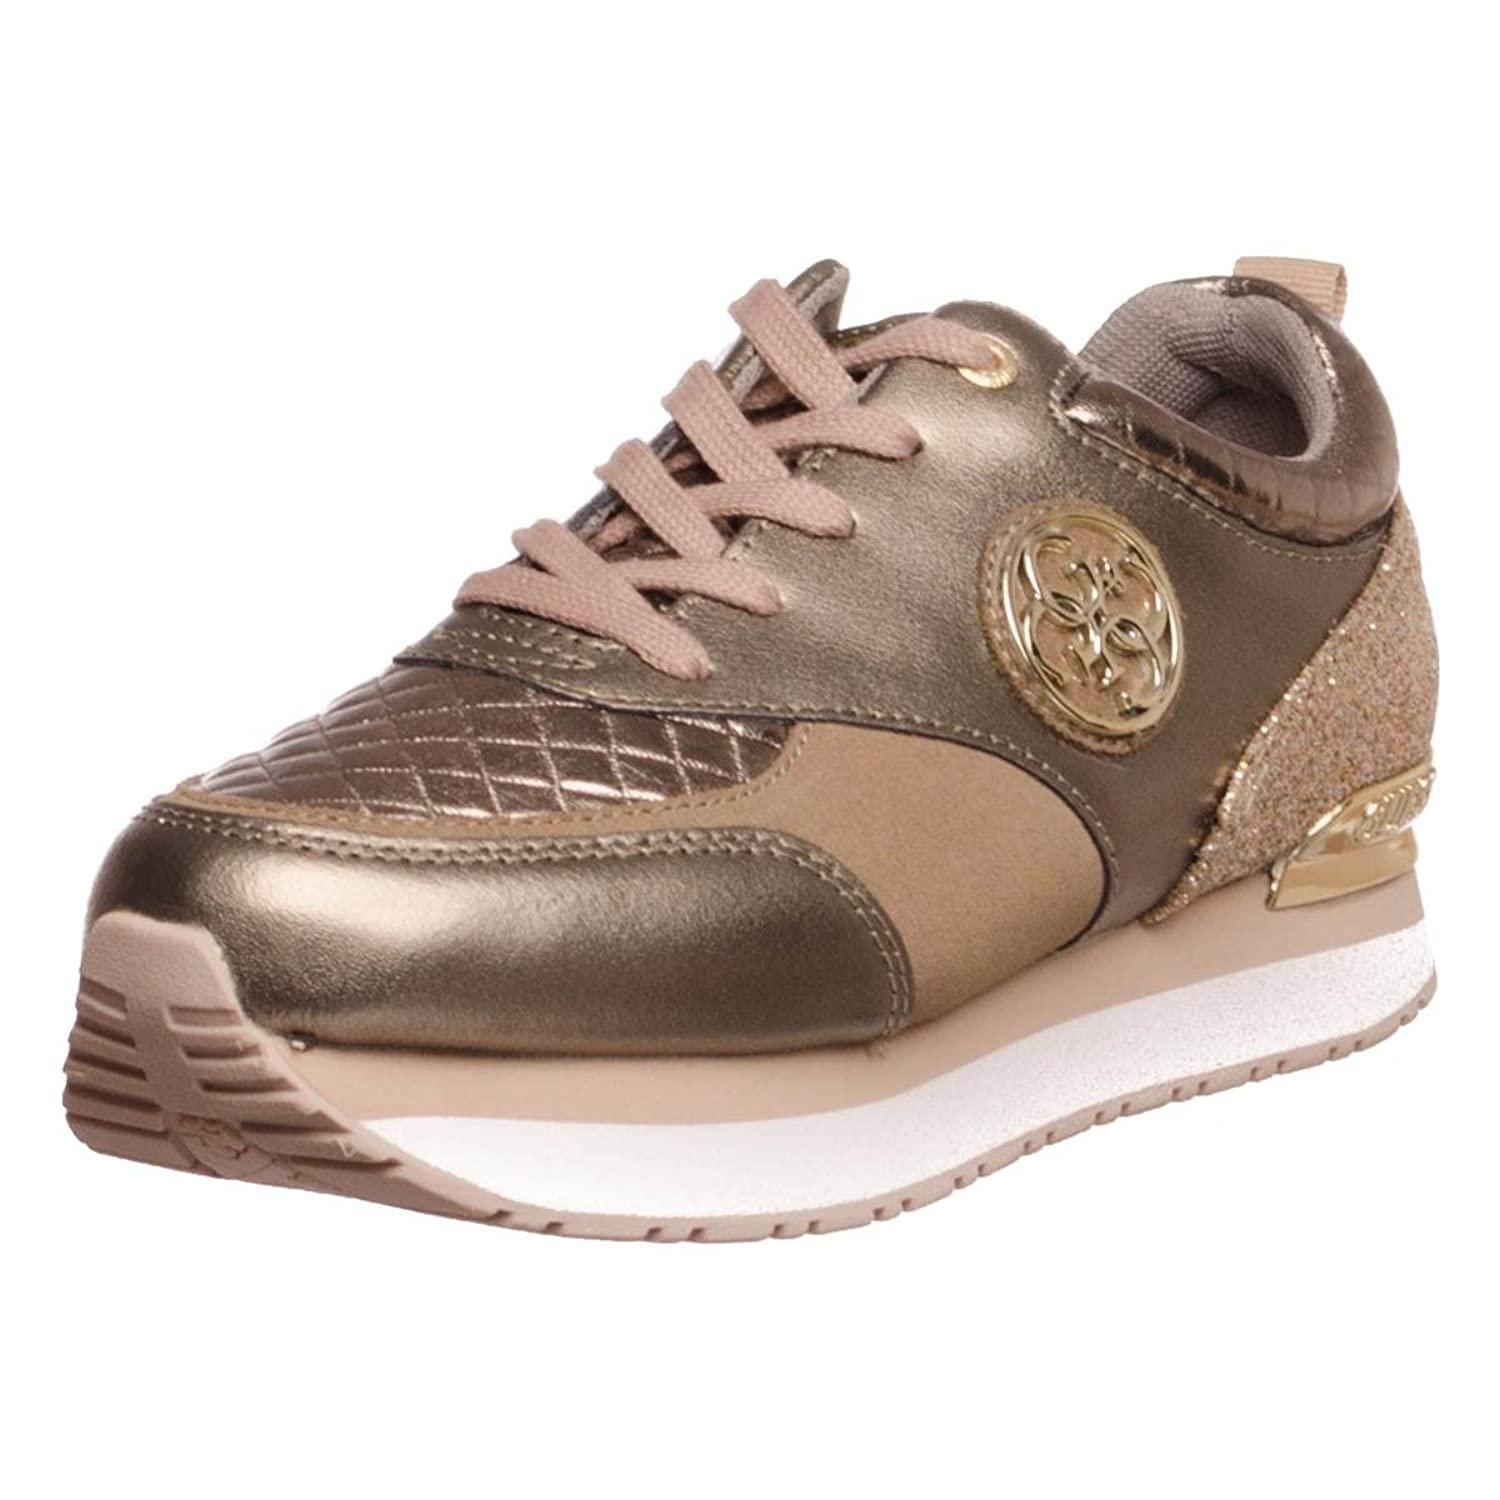 Guess golden leather sneaker RIMMA (35 - Gold) K4HSmfk